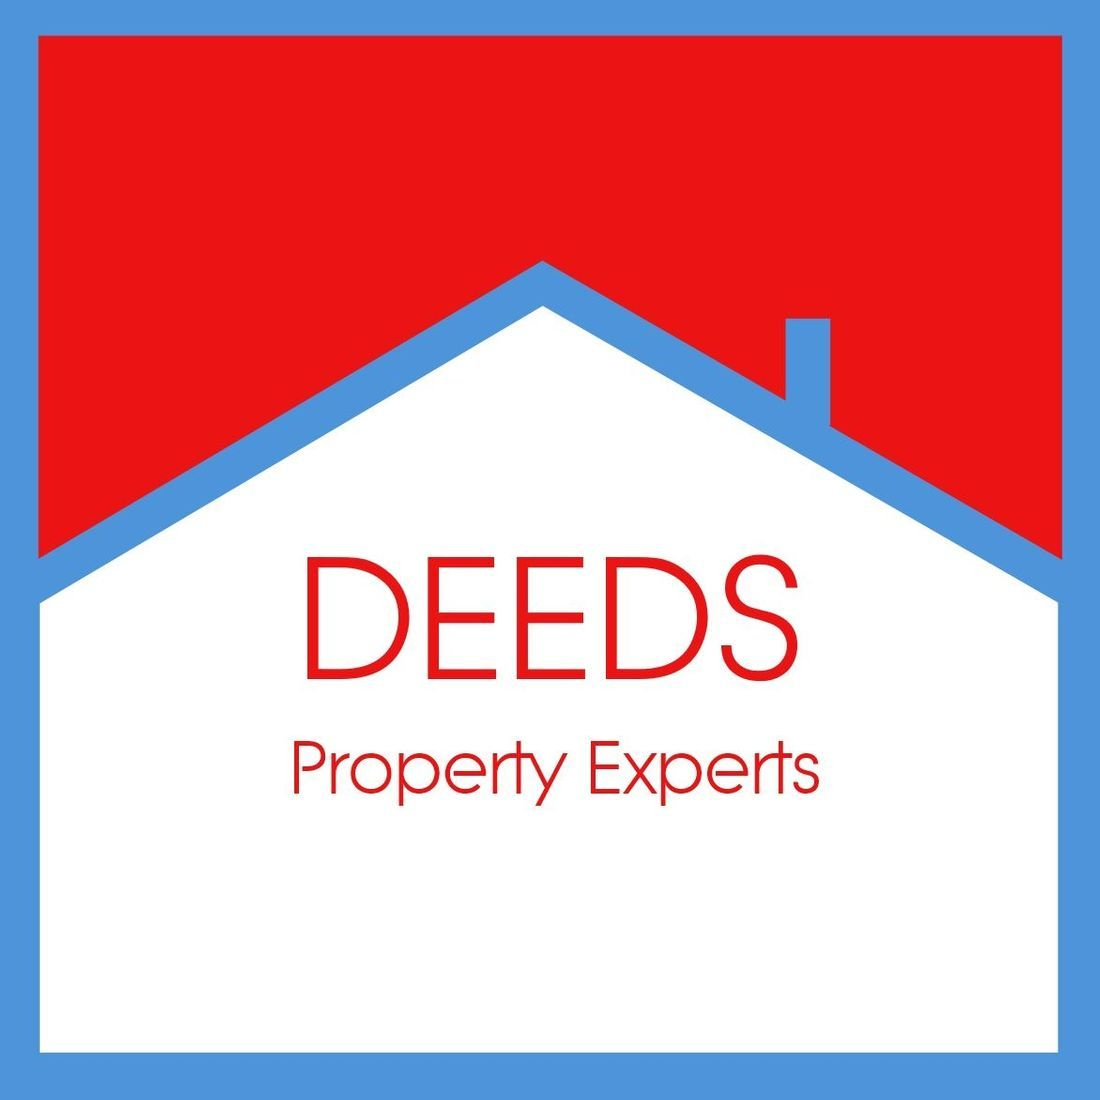 Valleys houses for sale, Liverppol agents, Property for sale, Sell my home, estate Agents, Houses for sale, South Wales agents,